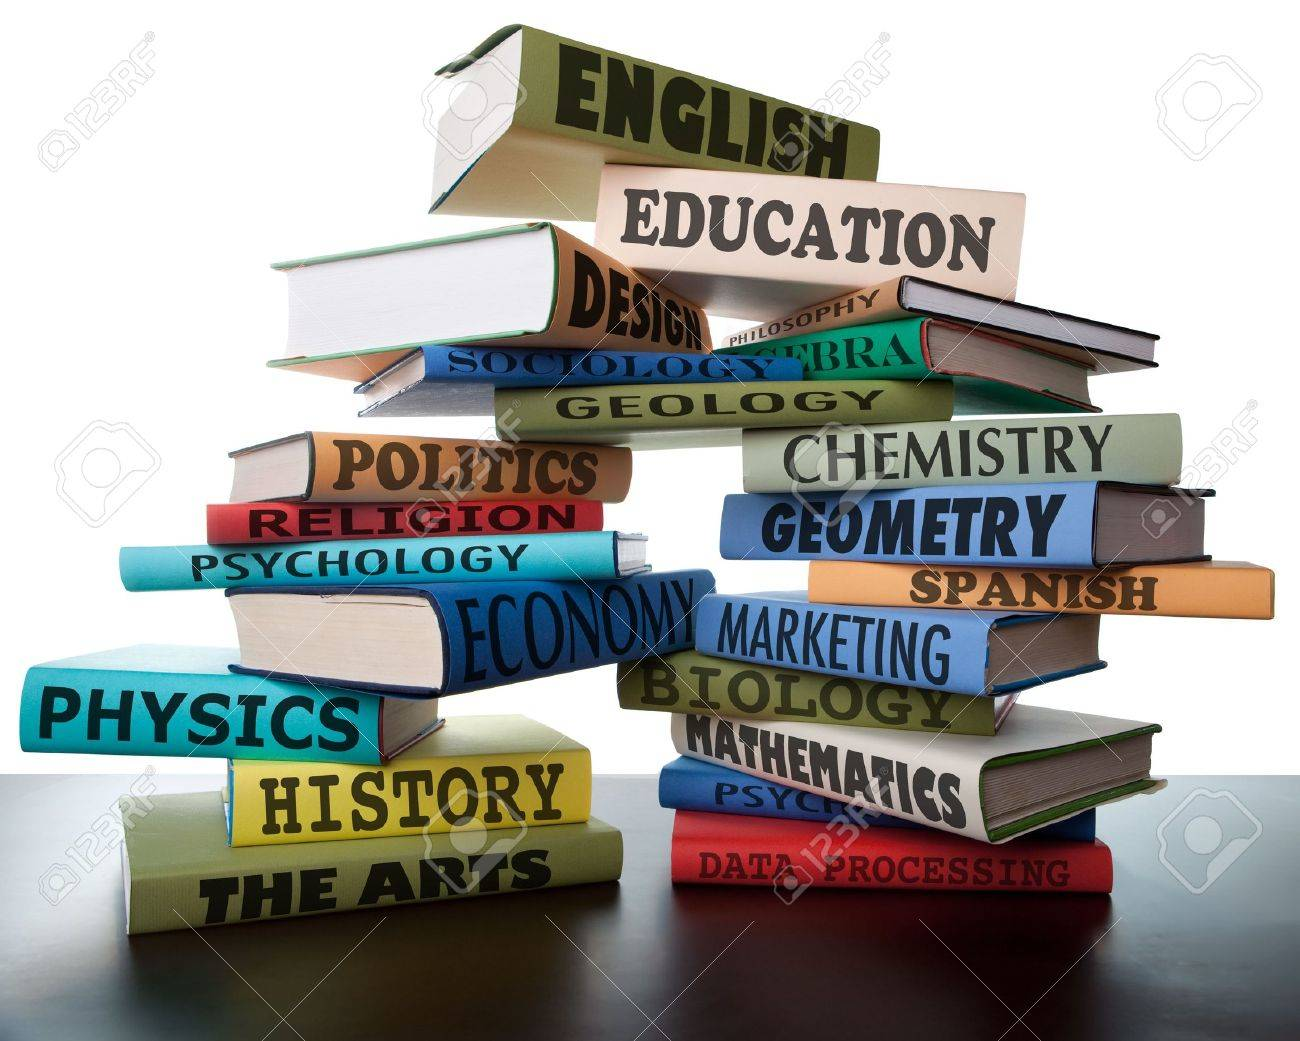 school books on a stack educational textbooks wih text education